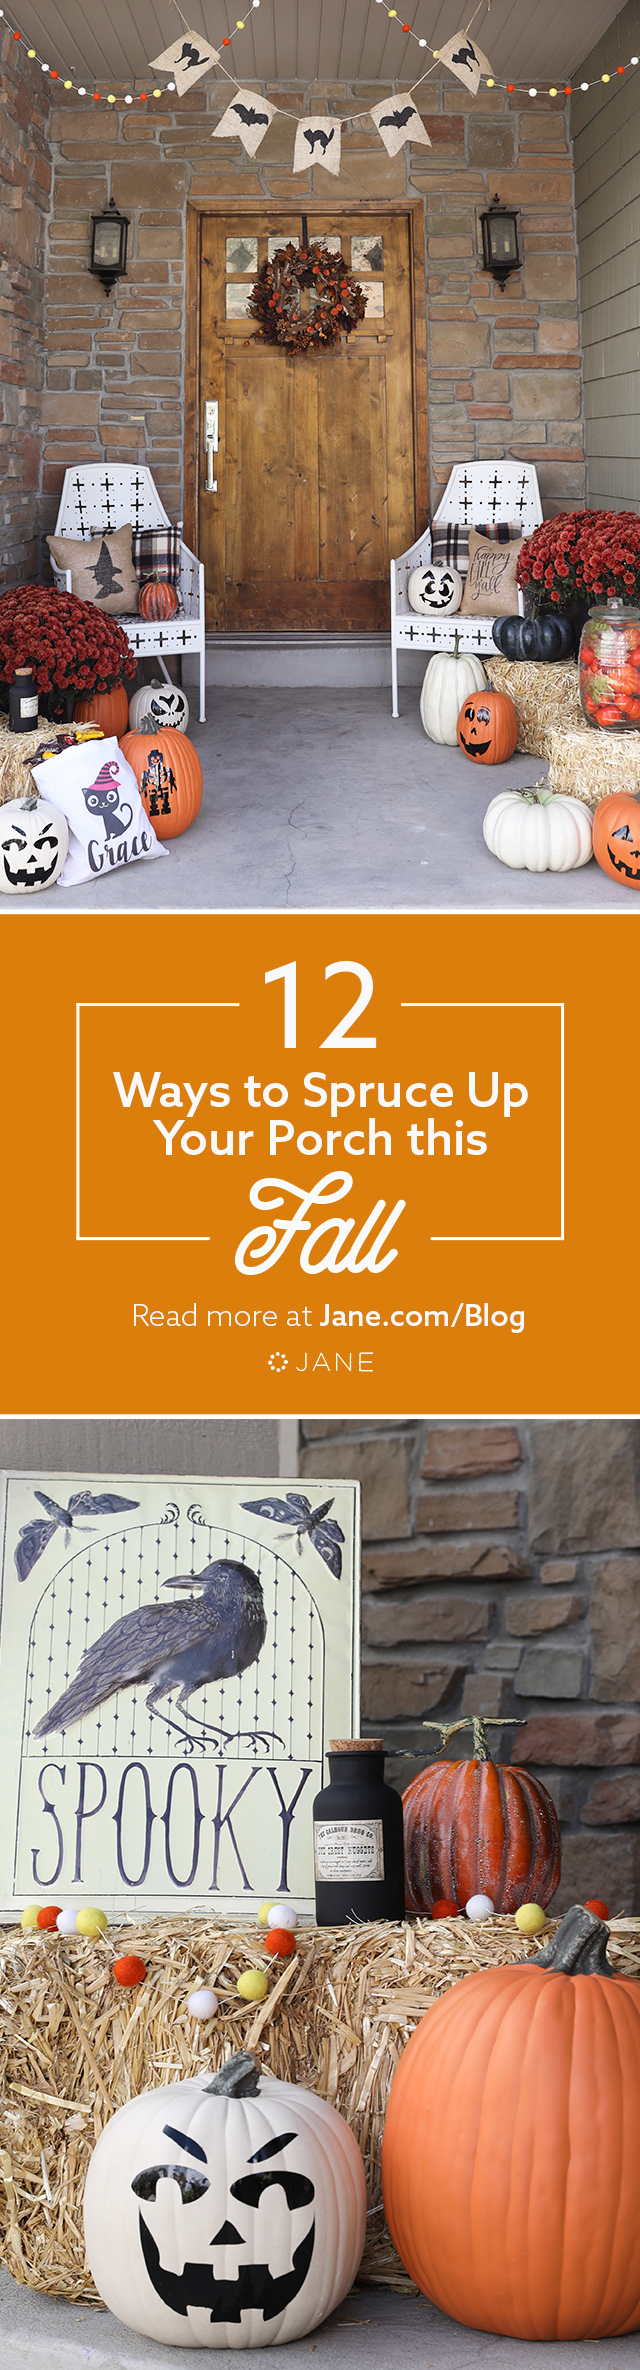 Fall is here and porch decorating is in full swing! Hit a home run with your porch ensemble with these tips, as well as vinyl pumpkin decals, pillows, and garlands from Jane.com!